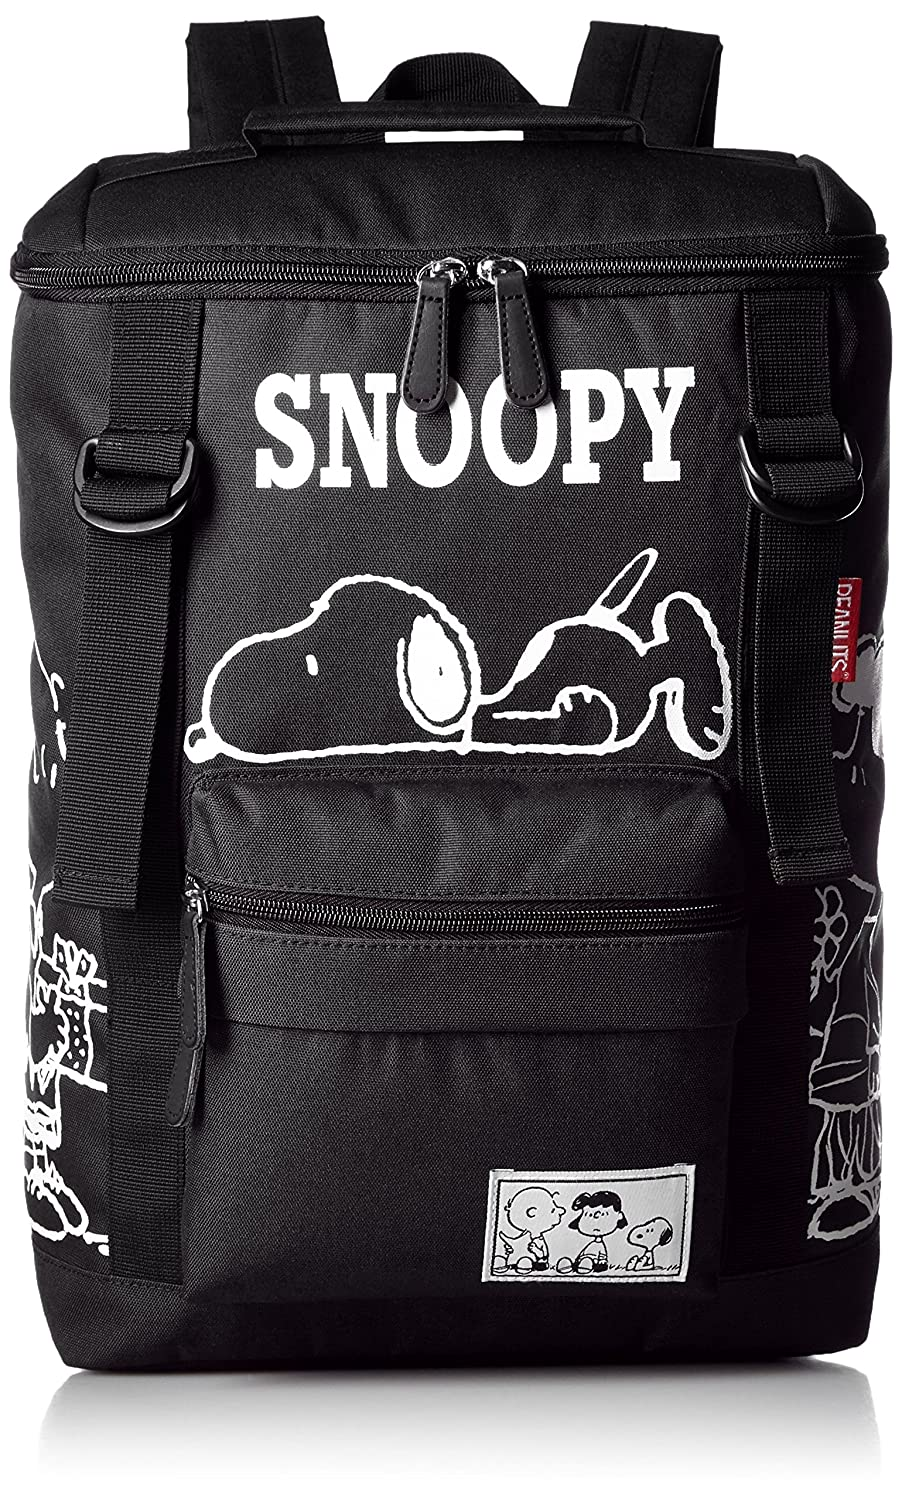 31400f062b SNOOPY Double belt Square Rucksack Backpack (Black) 30%OFF - xn ...